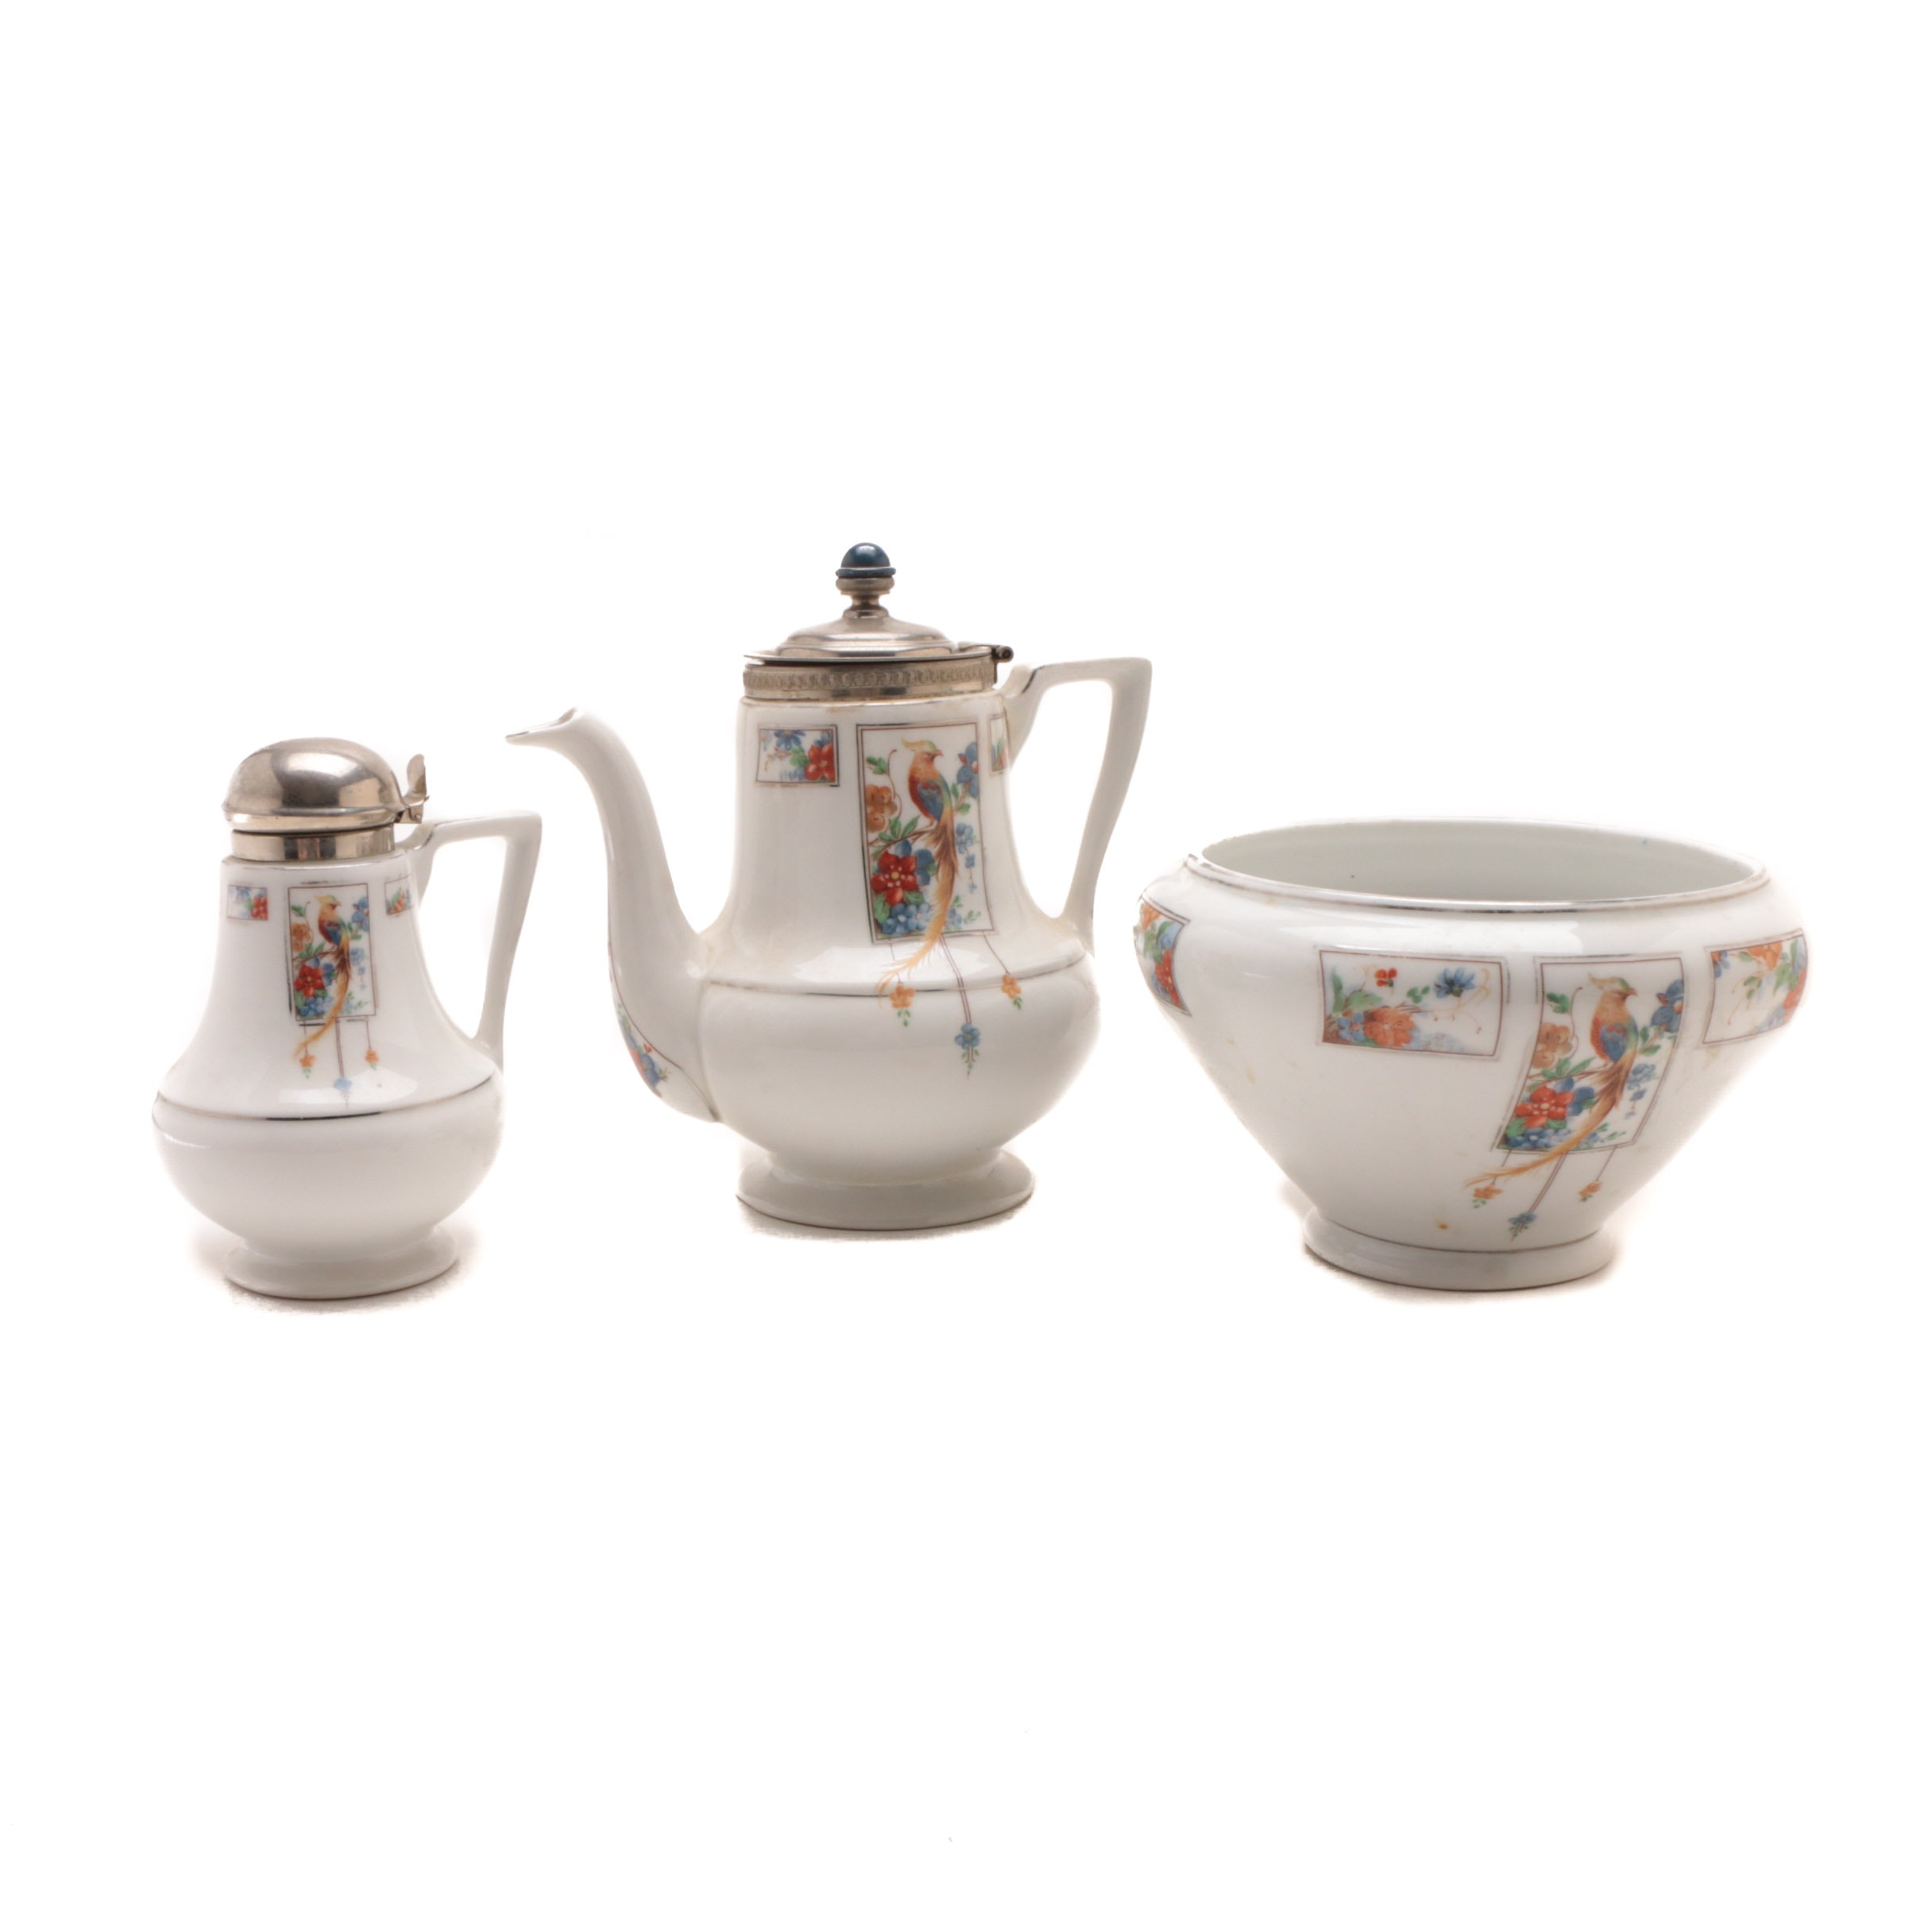 Collection of Royal Rochester Porcelain